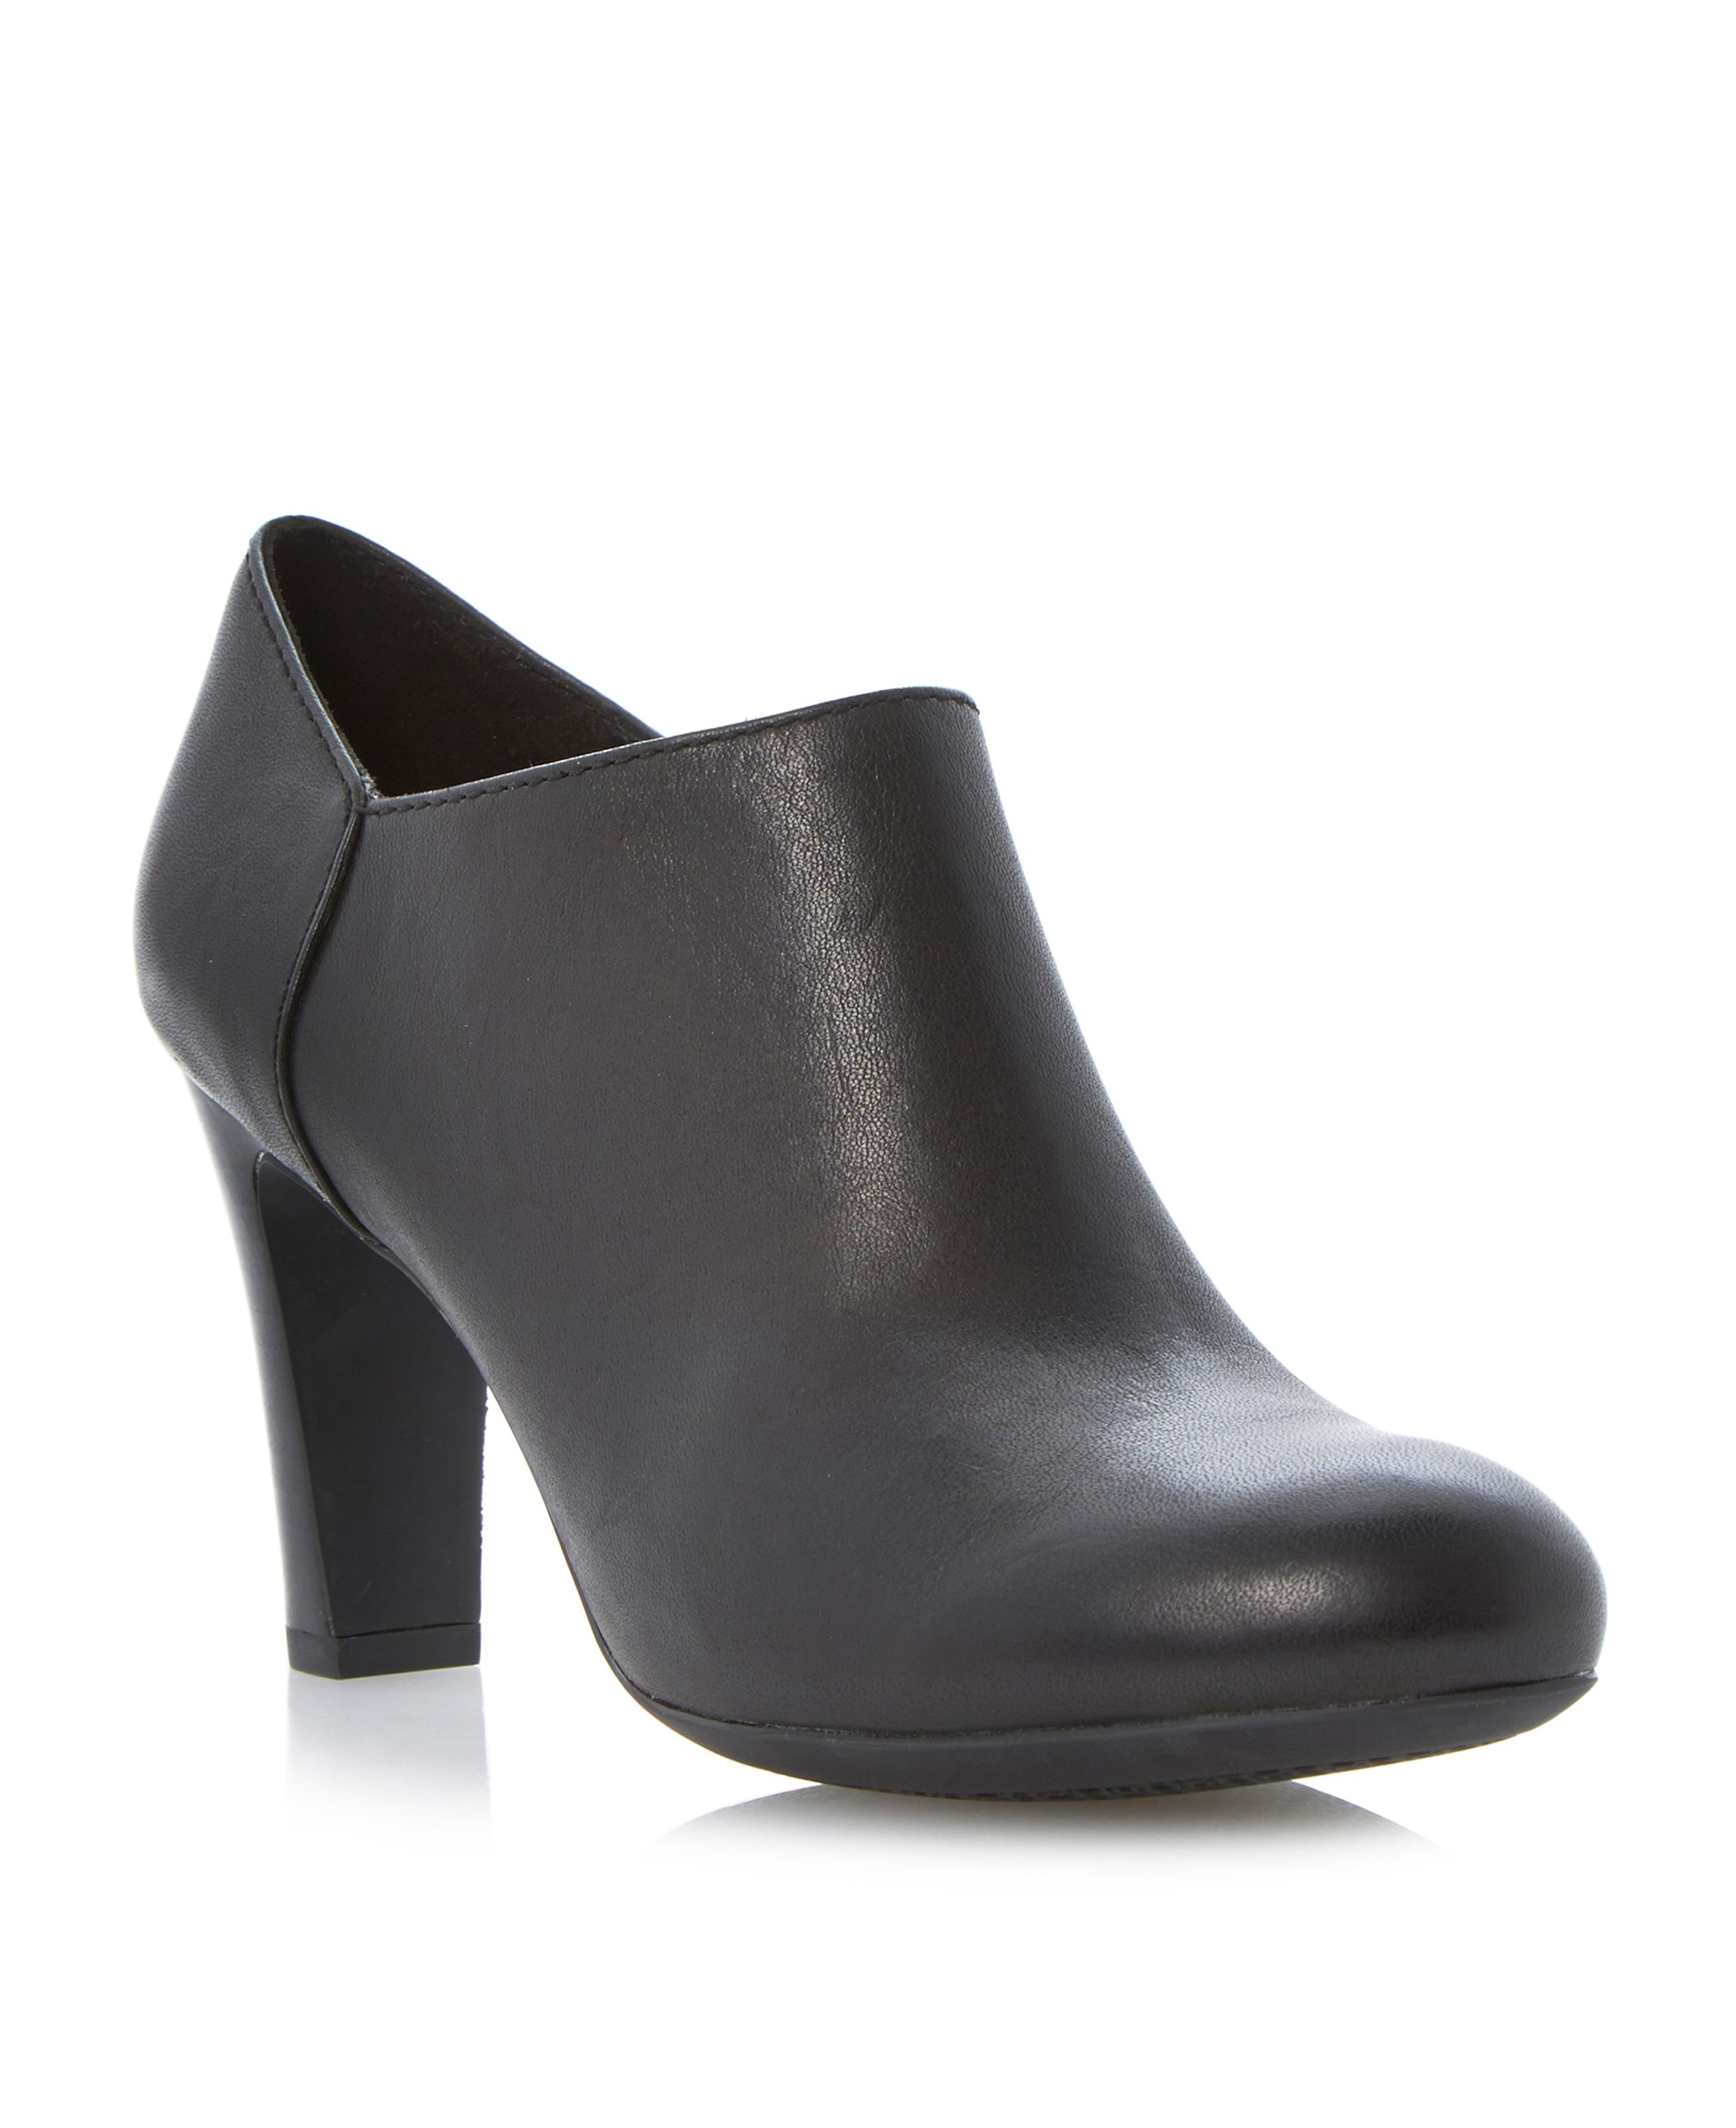 Elegant Geox D Nydame Black Womens Boots | TReds